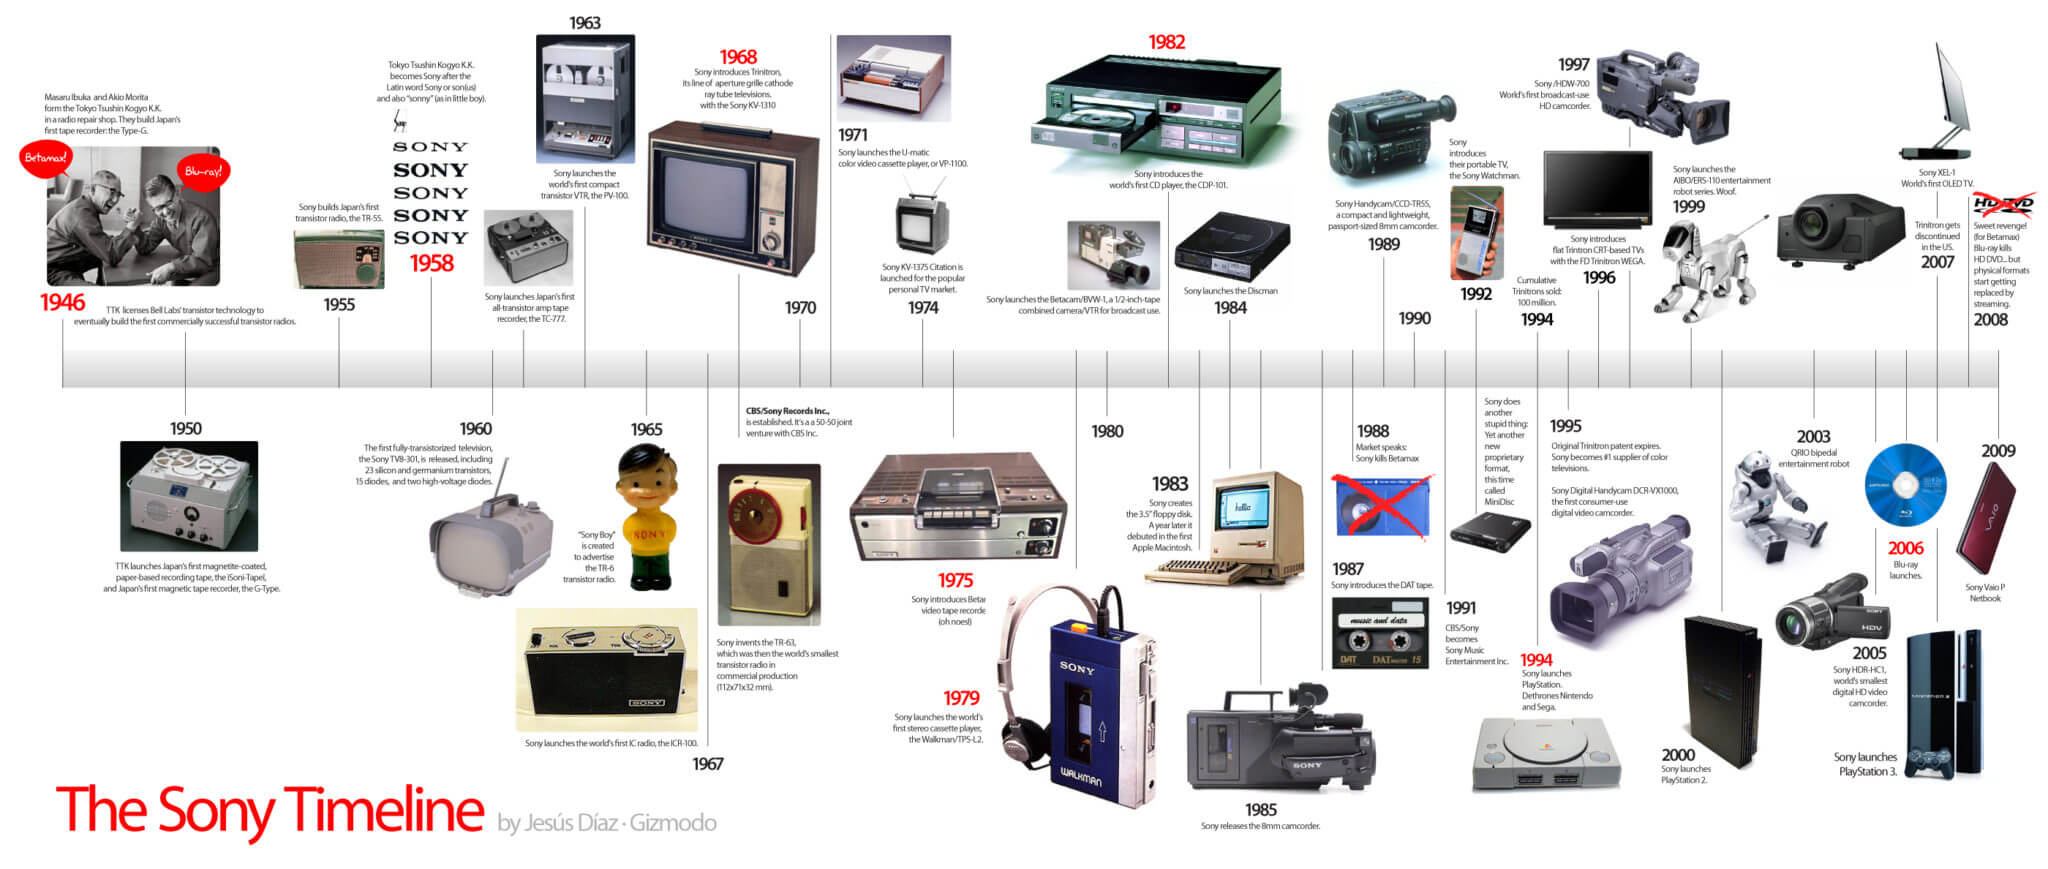 Historical timeline charts related to computer/electronics - TechJini